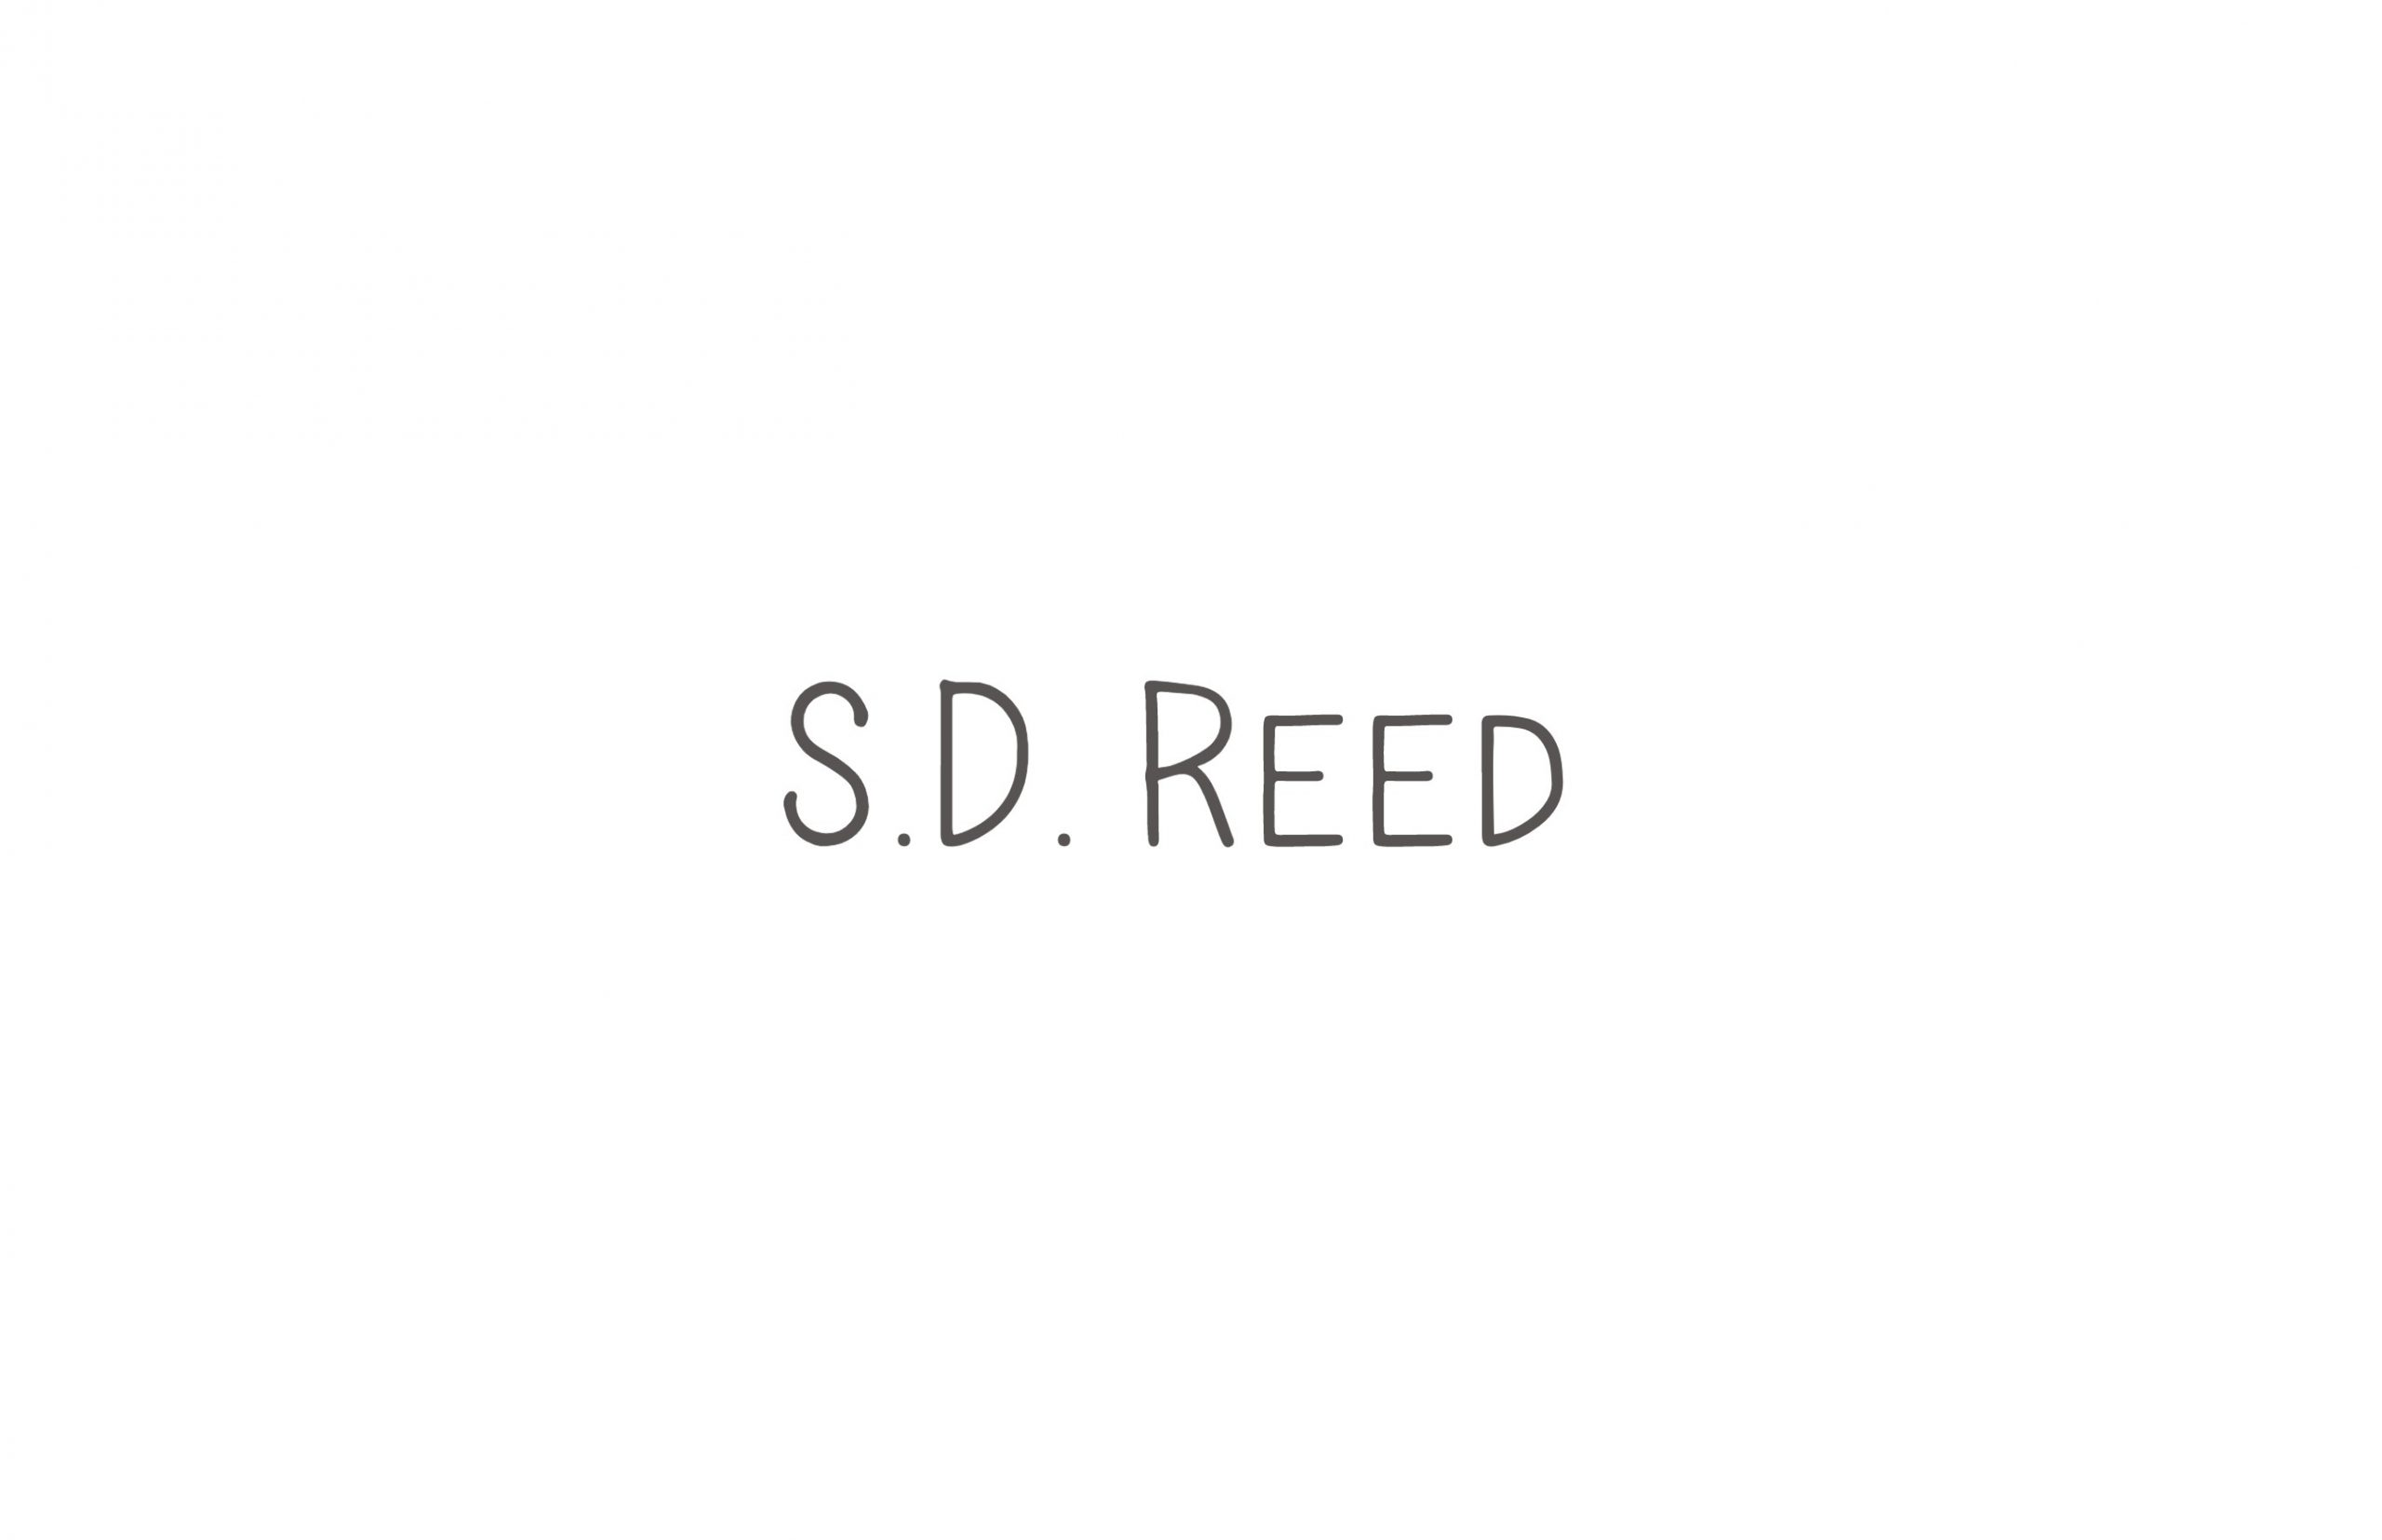 s.d. reed